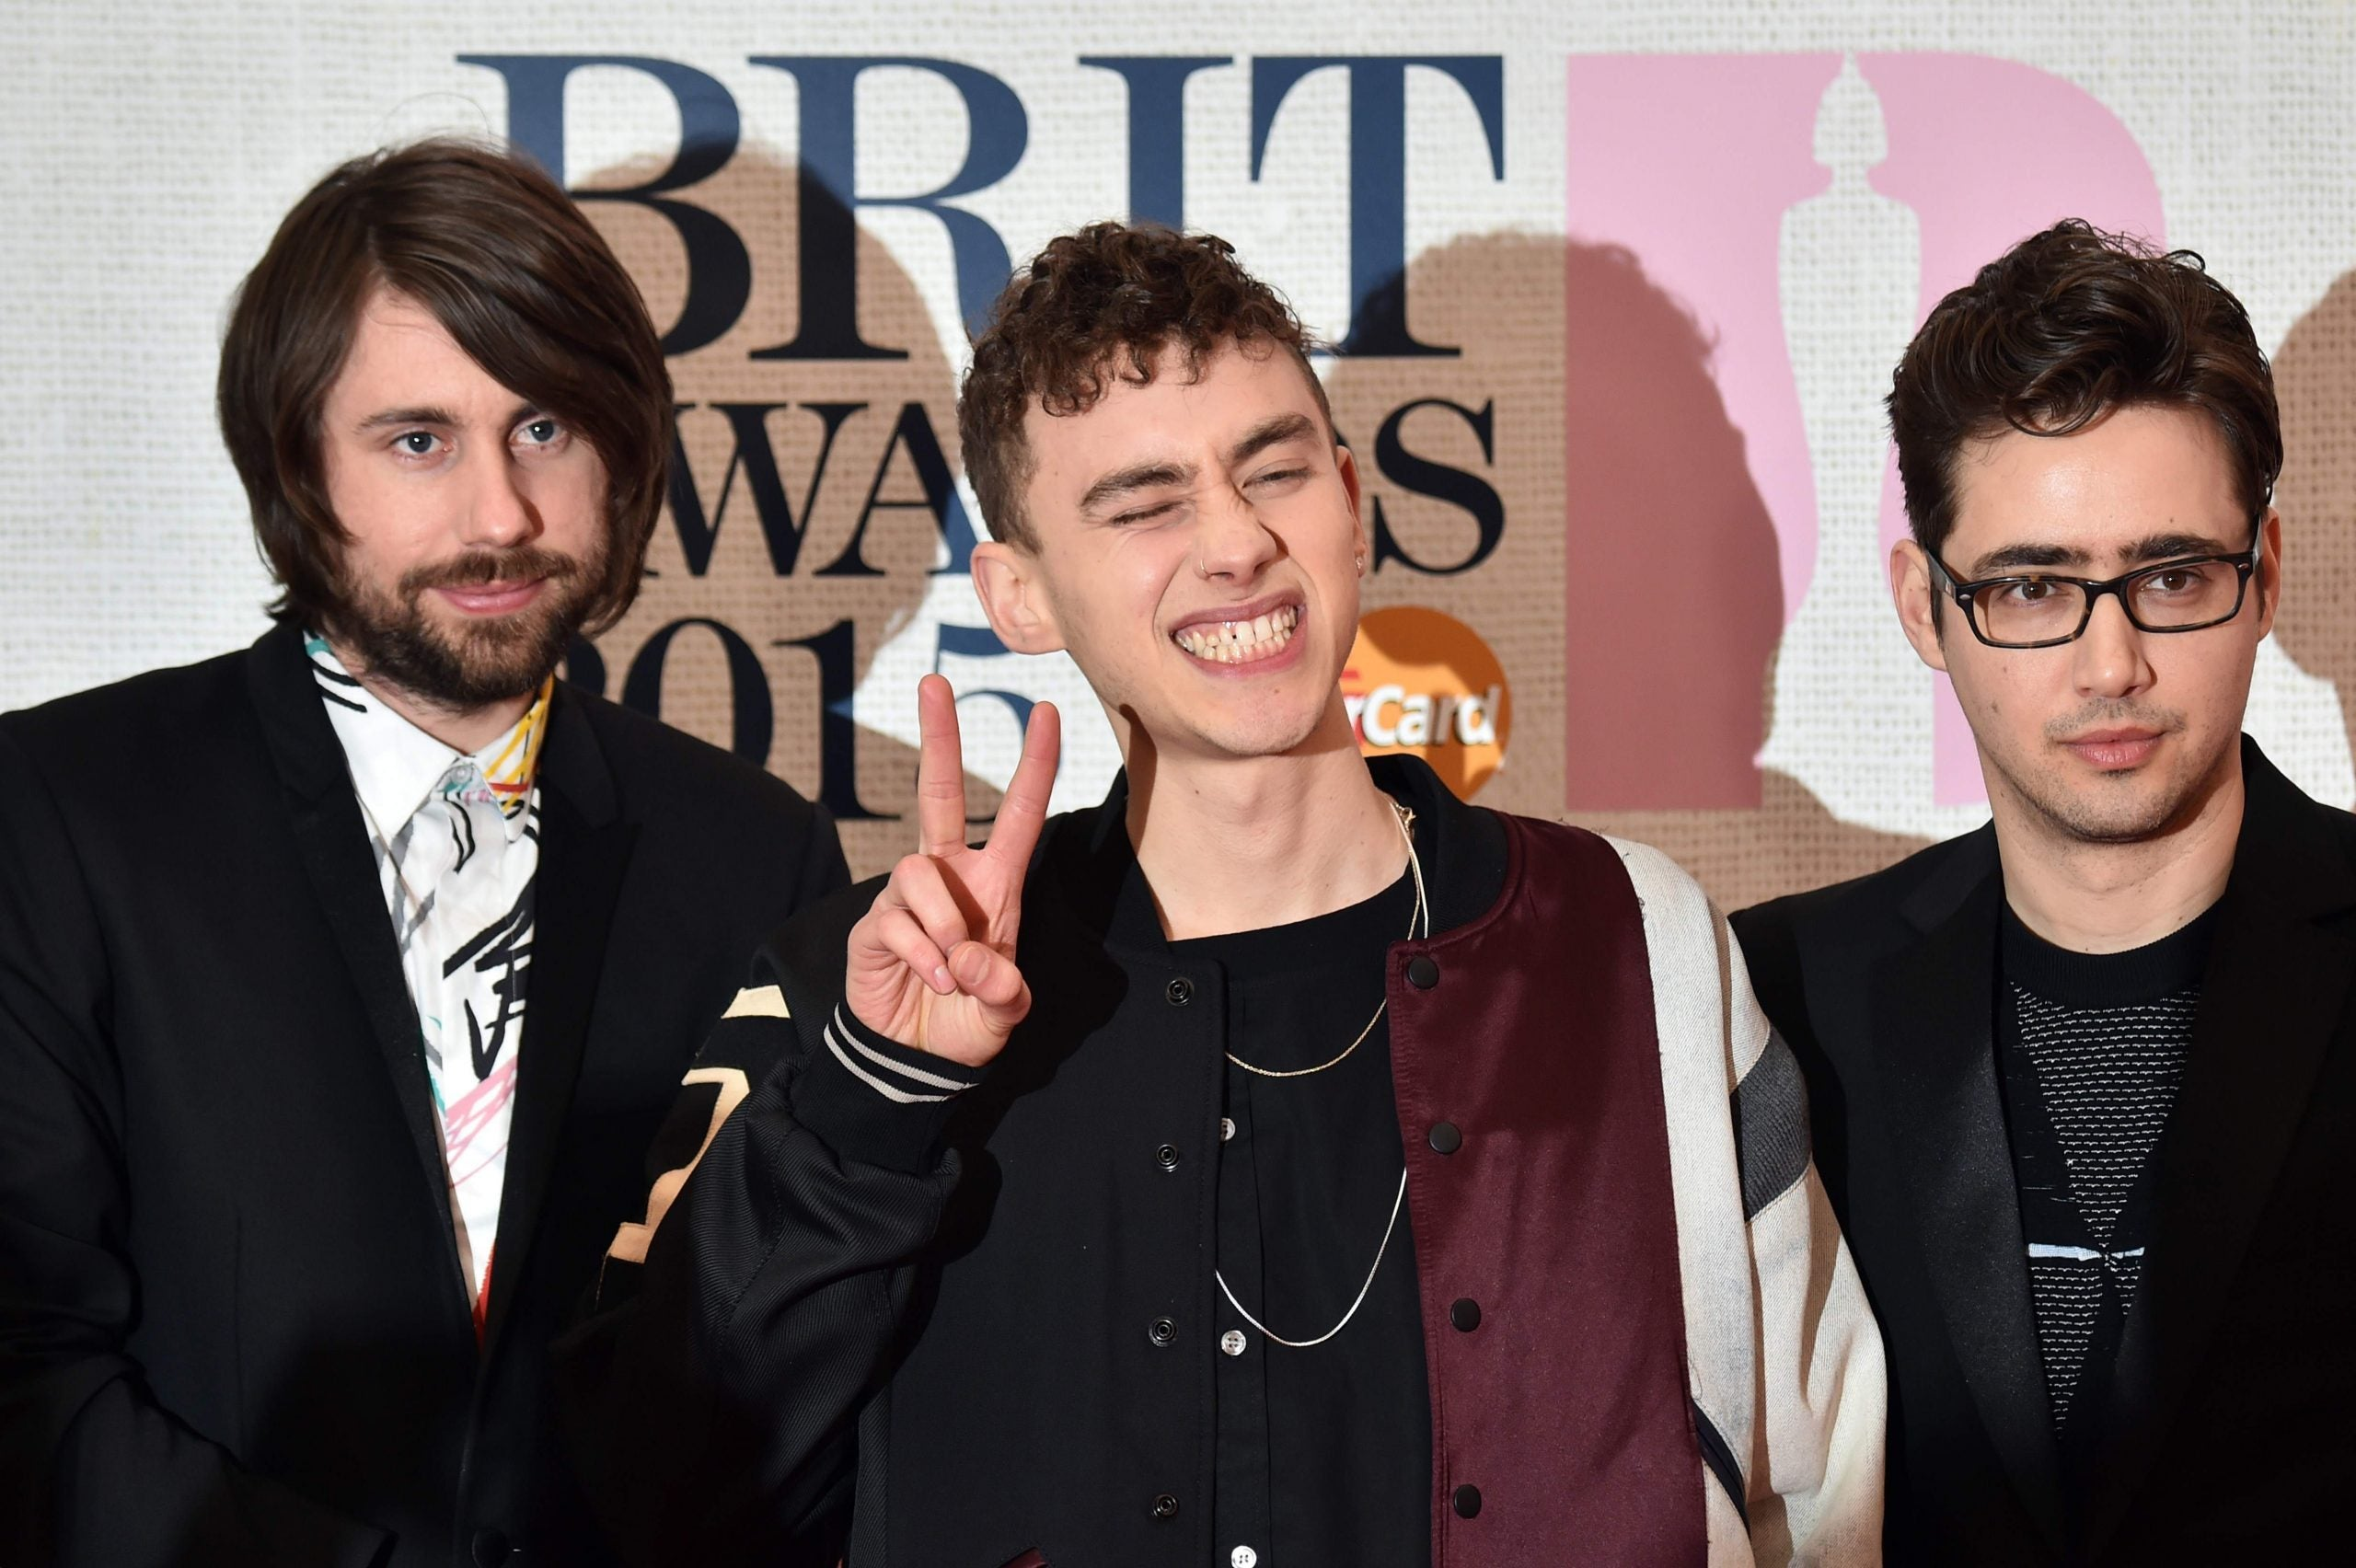 Corbyn, my bae: Olly Alexander on why he supports the Labour leader